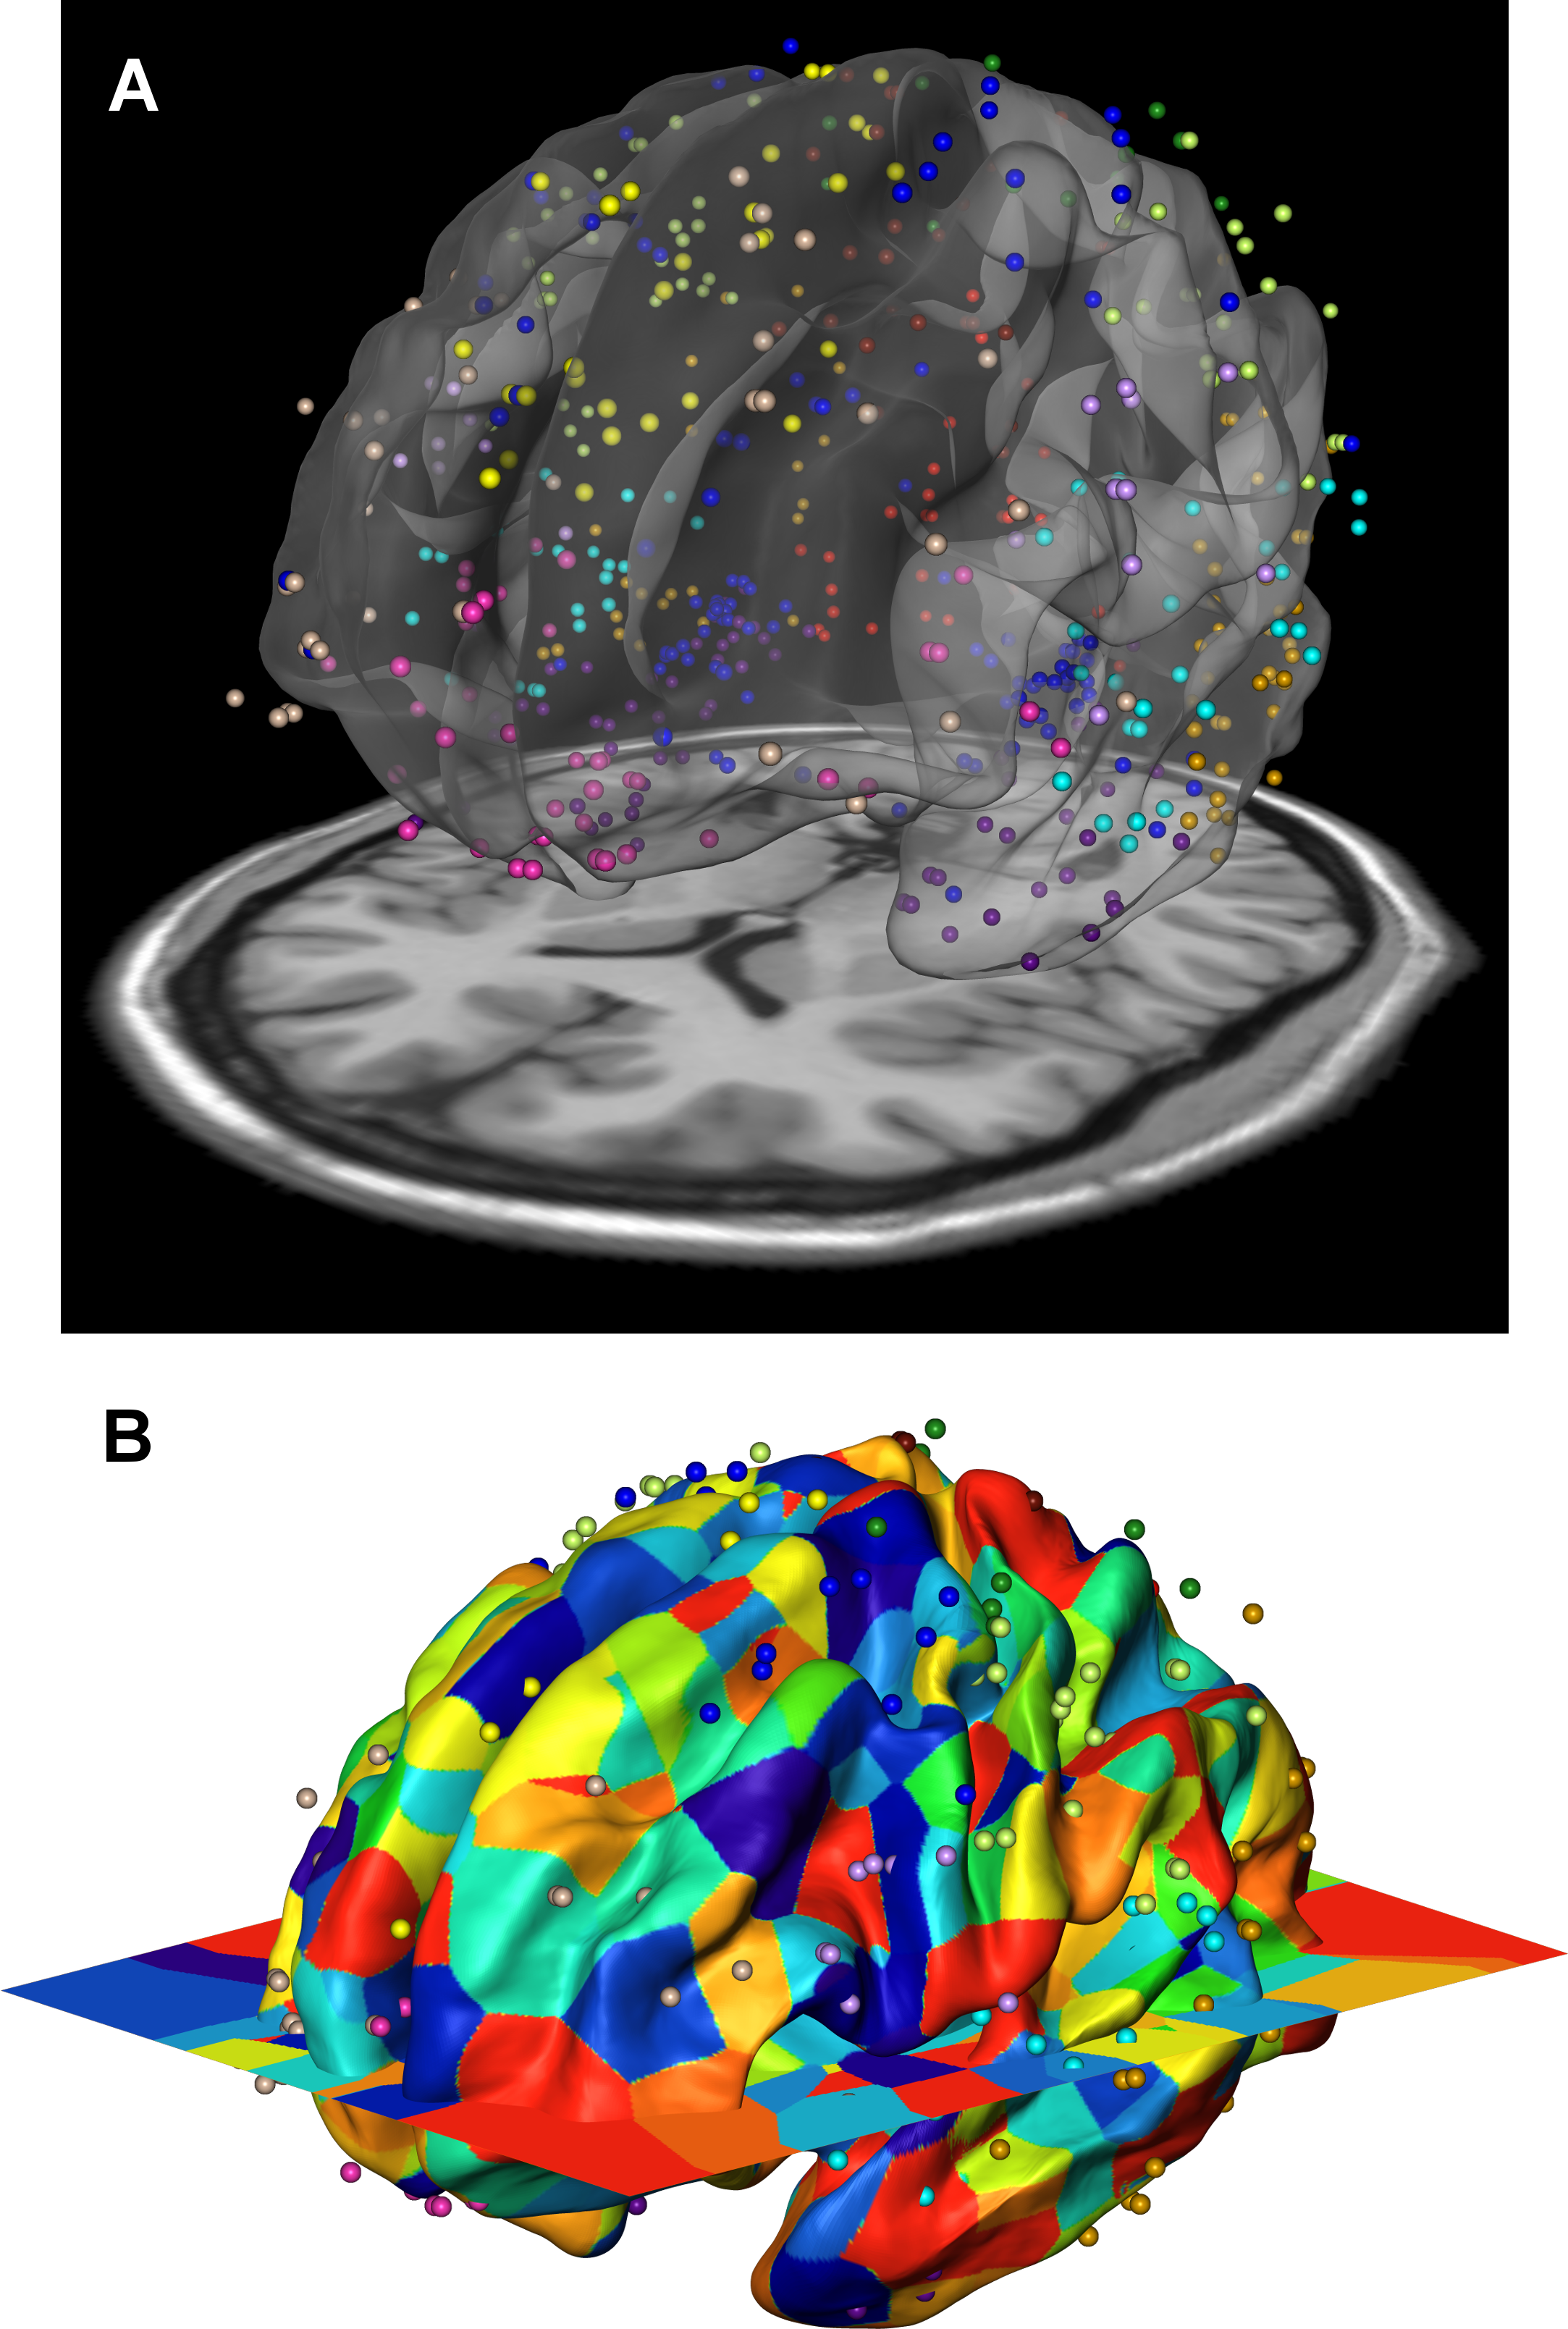 Gene expression data of the Allen Human Brain Atlas were mapped onto the 12 genetically based cortical regions in the MR space.